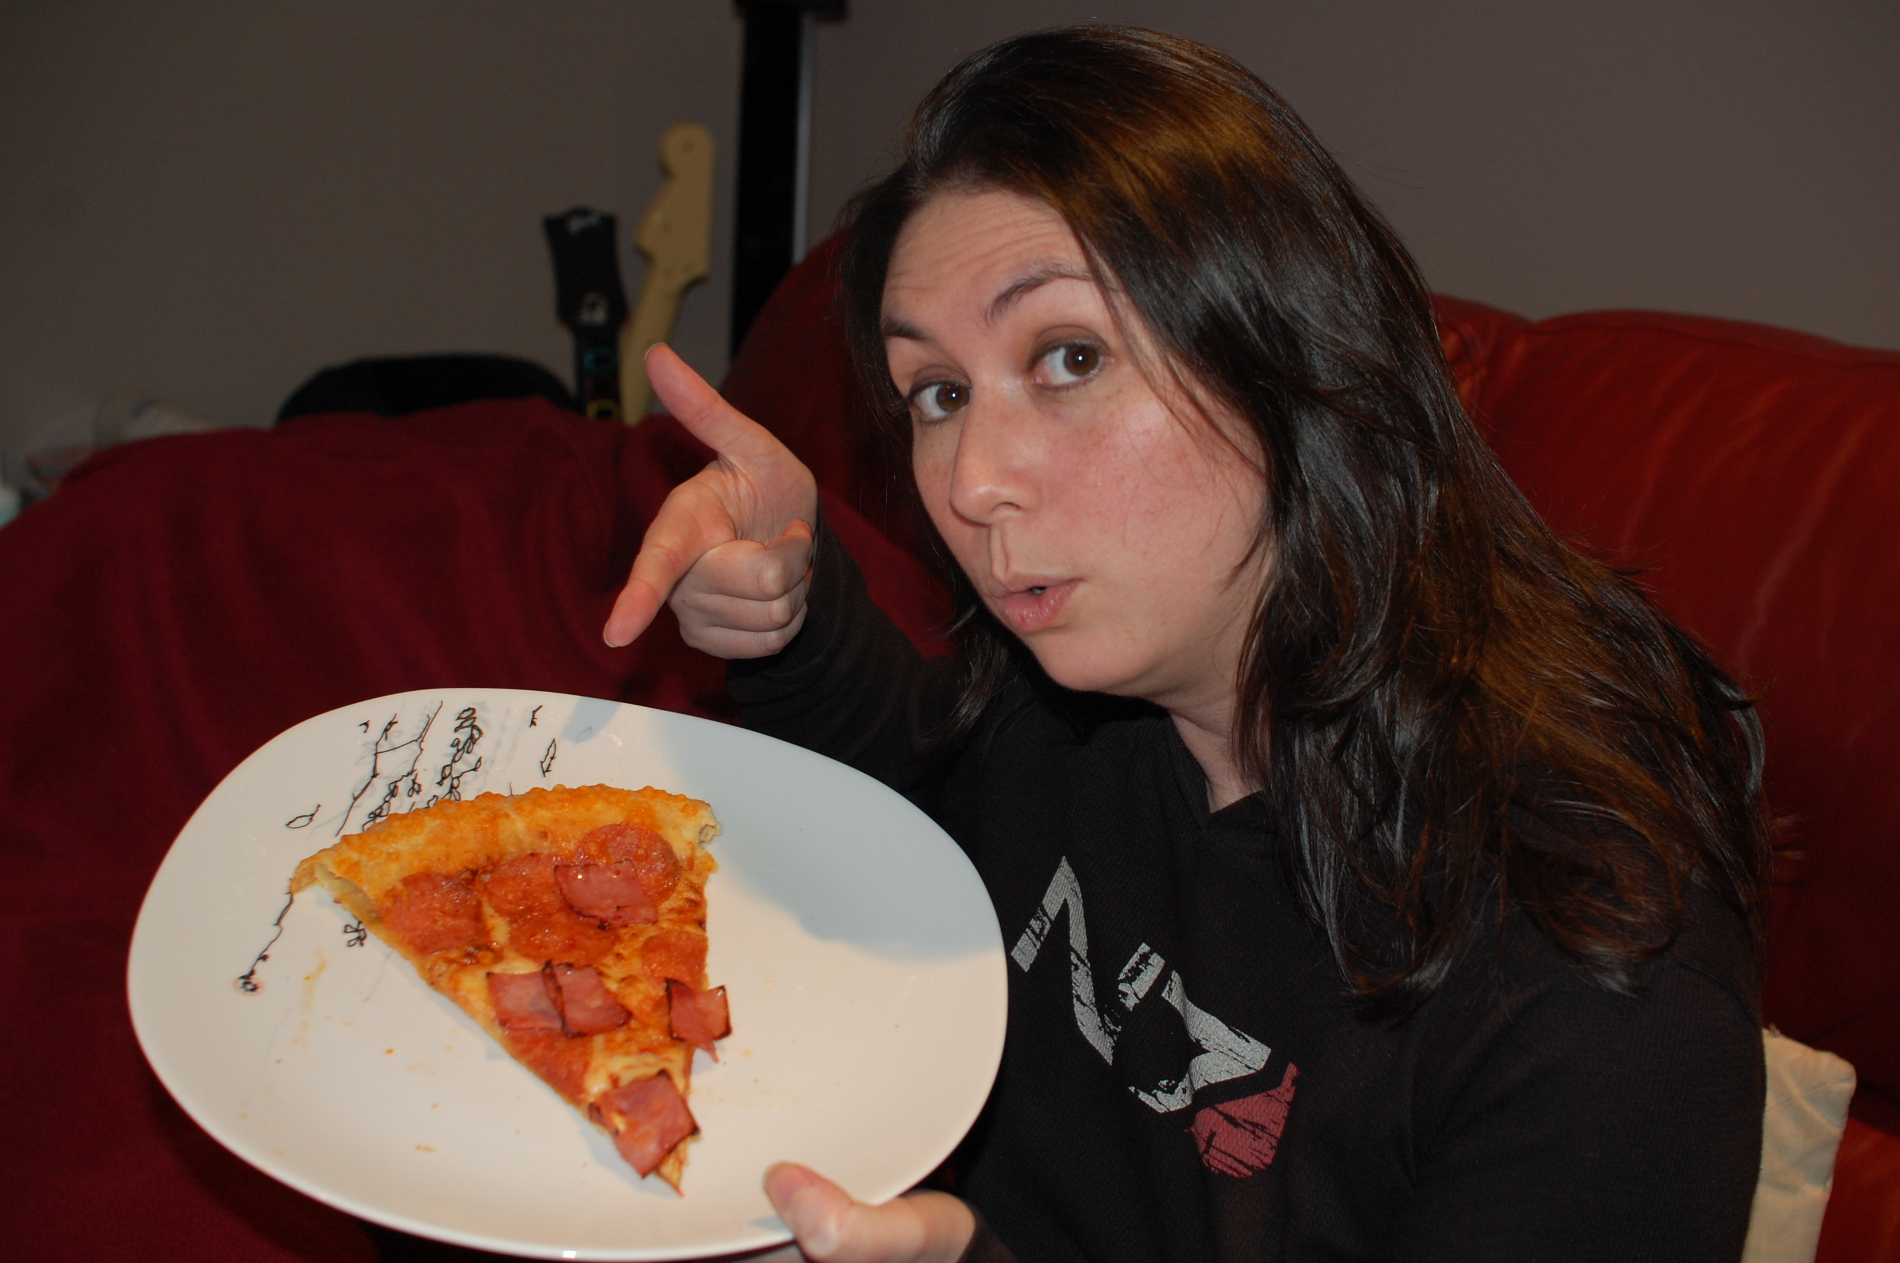 Halo 4 Stuffed Crust Pizza - The Slice